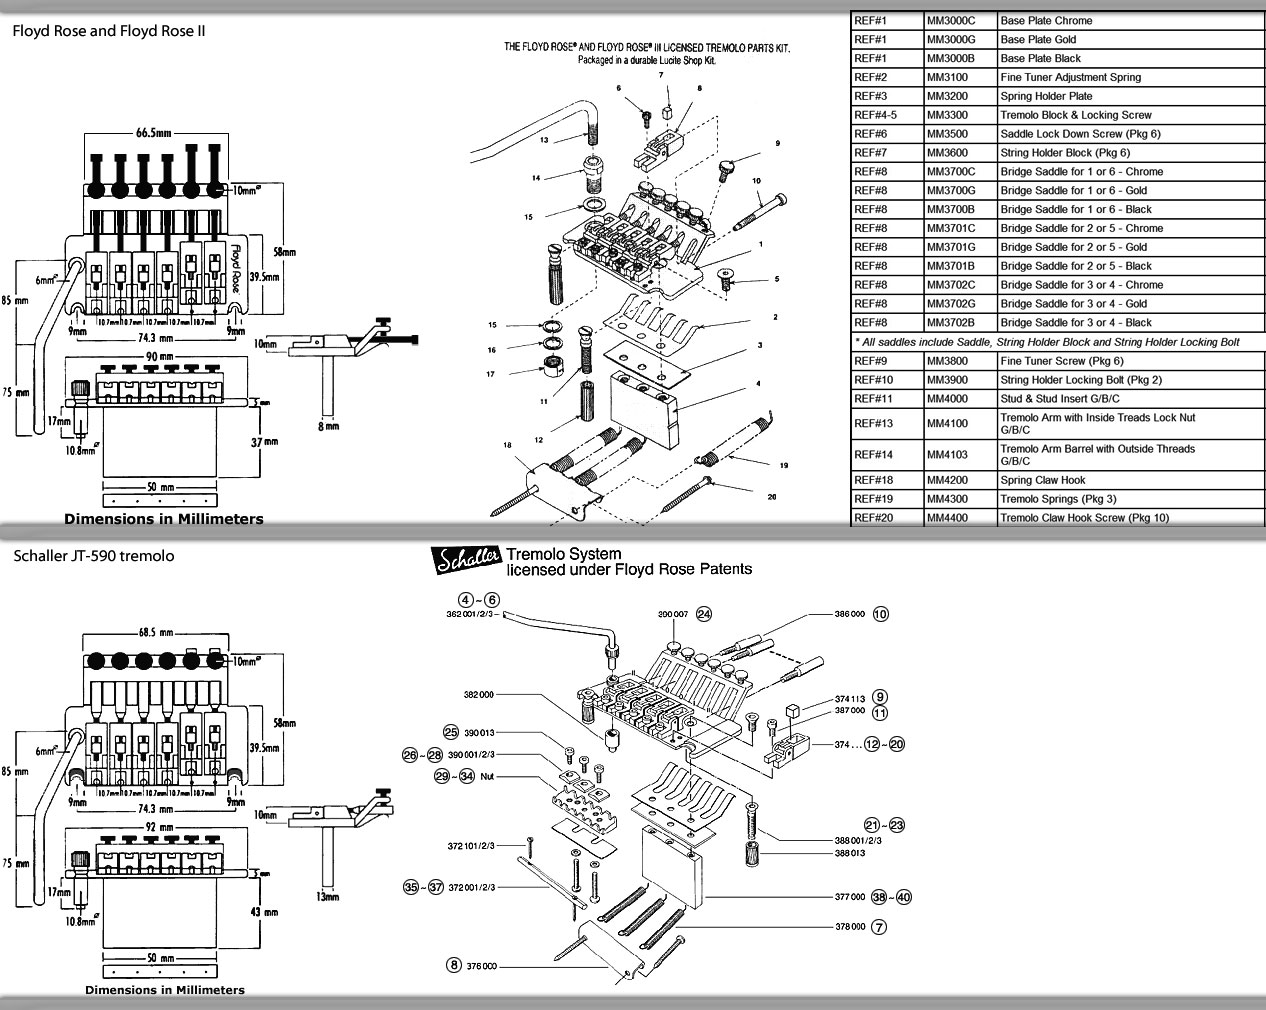 Floyd Rose Locking Tremolo Diagram